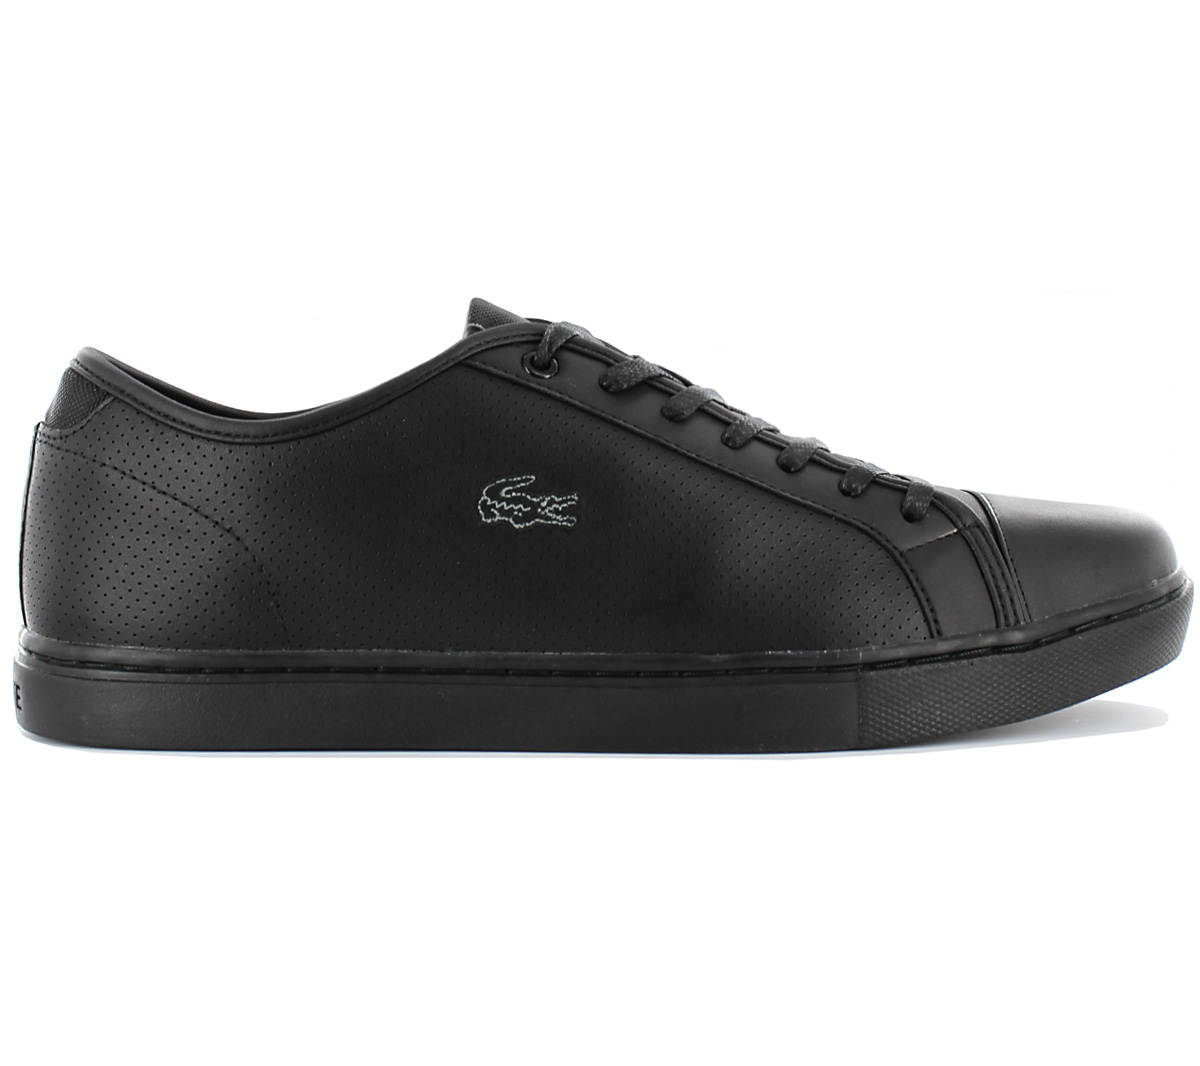 6d852e8d9 Lacoste Showcourt Ctr Spm Mens Sneakers Leather Shoes Carnaby ...